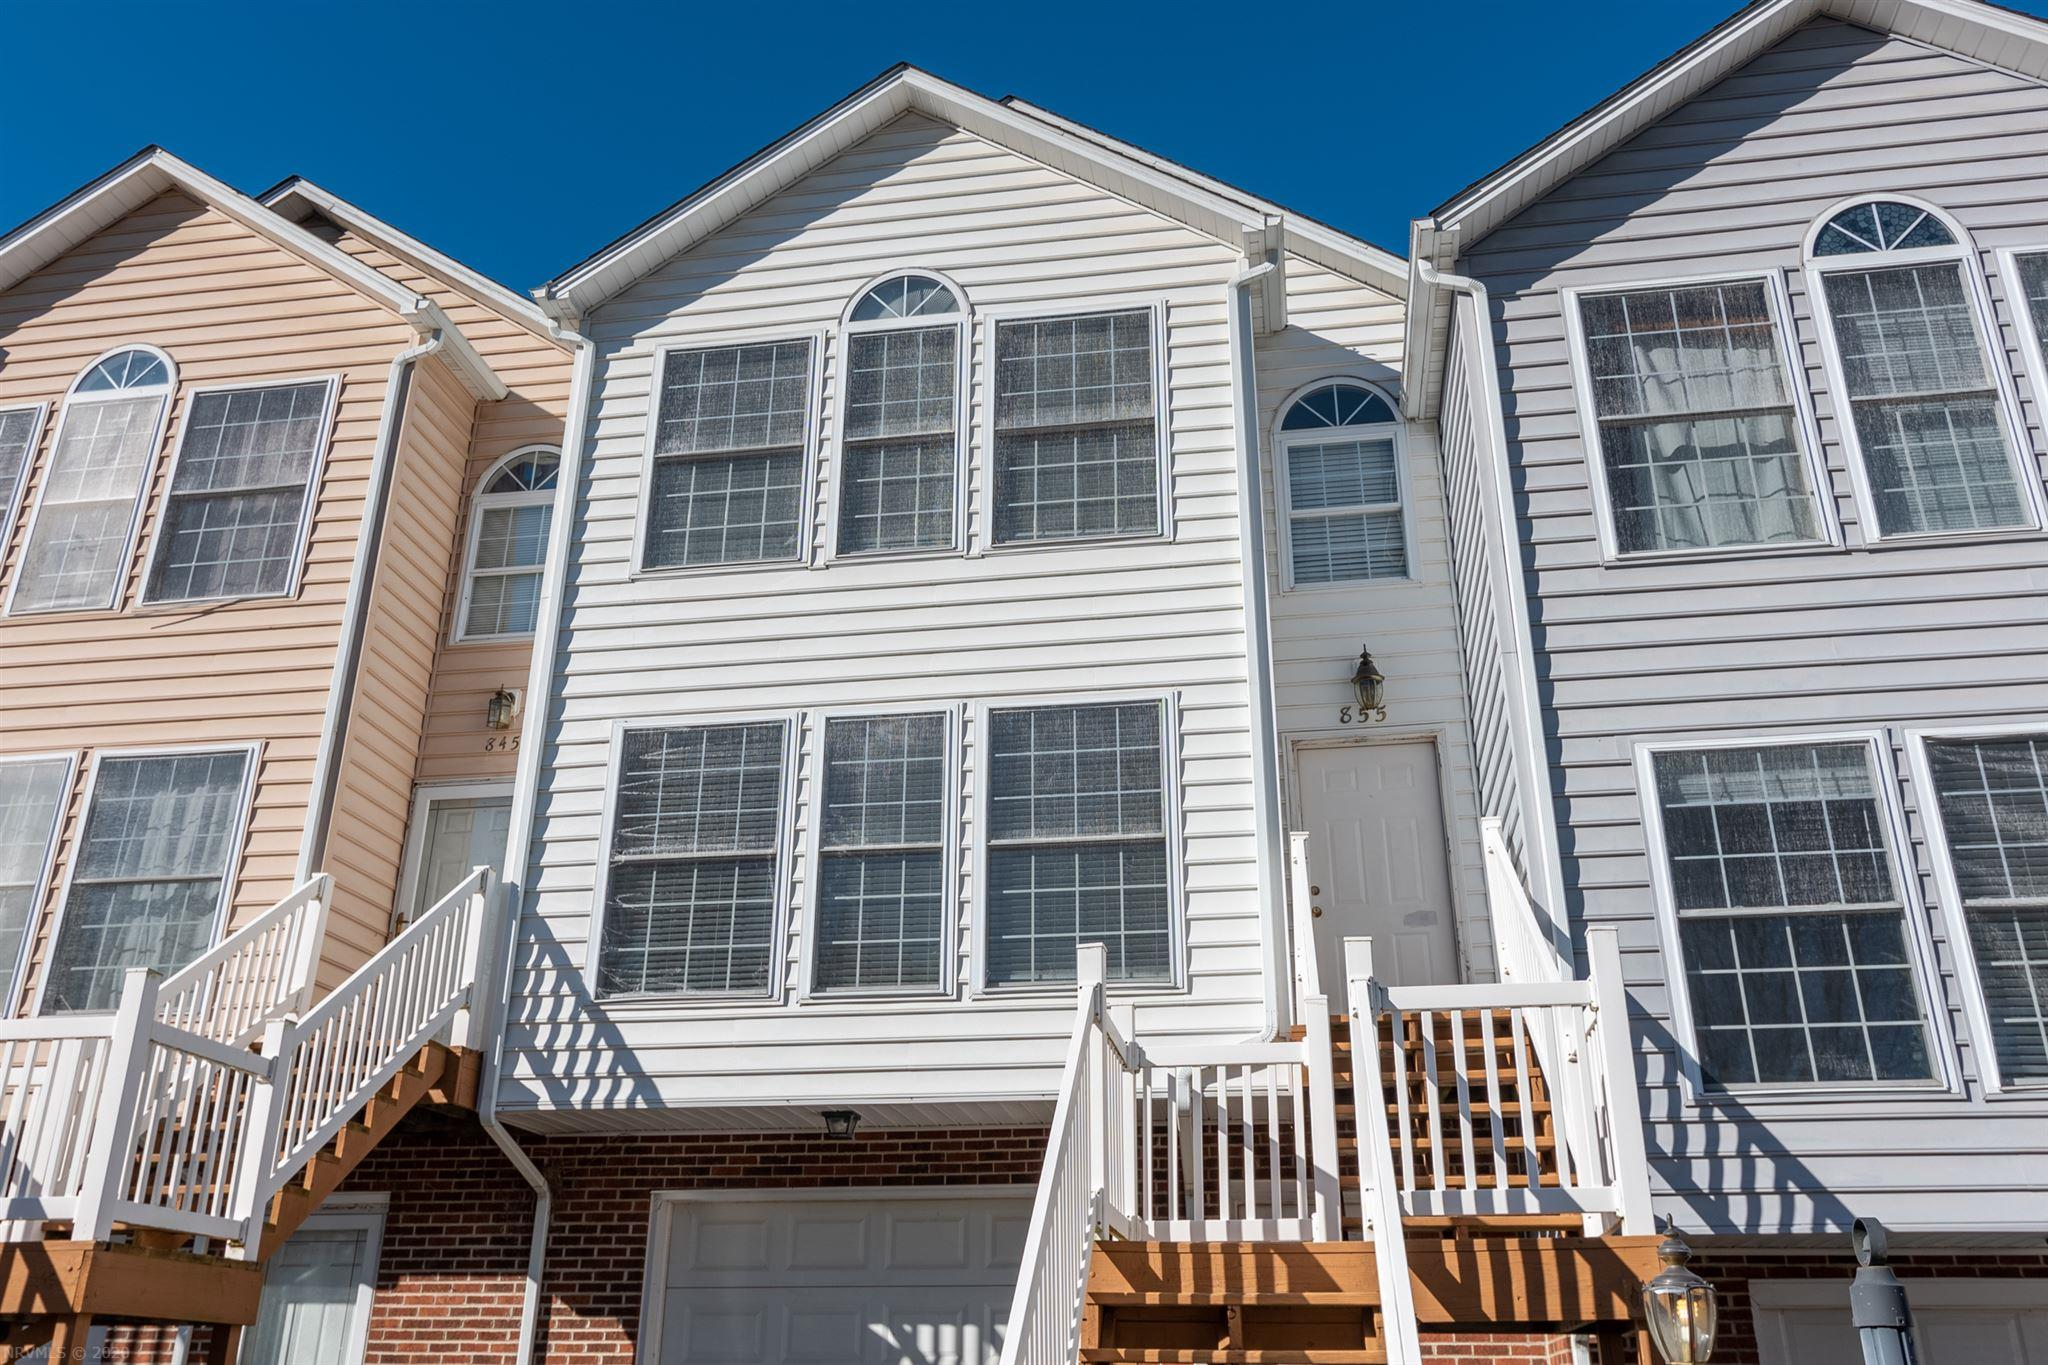 This lovely, light filled 3 bedroom, 3 1/2 bathroom townhome is perfectly situated only minutes from I-81, Rt. 460, and downtown Christiansburg. This charming 1700 sq ft home features a large living room with hardwood floors, a spacious eat-in kitchen with stainless steel appliances, and a large deck to enjoy those family barbecues or play with your pet in the private fenced-in courtyard. Upstairs boasts a gorgeous master suite with a vaulted ceiling, spectacular floor to ceiling windows, a walk-in closet, and en-suite bathroom. Also upstairs is another large bedroom with an en-suite bathroom and it's own private balcony! The basement provides the third bedroom and bathroom along with a generously sized garage for all your storage needs. This one won't last long, so make it yours today!